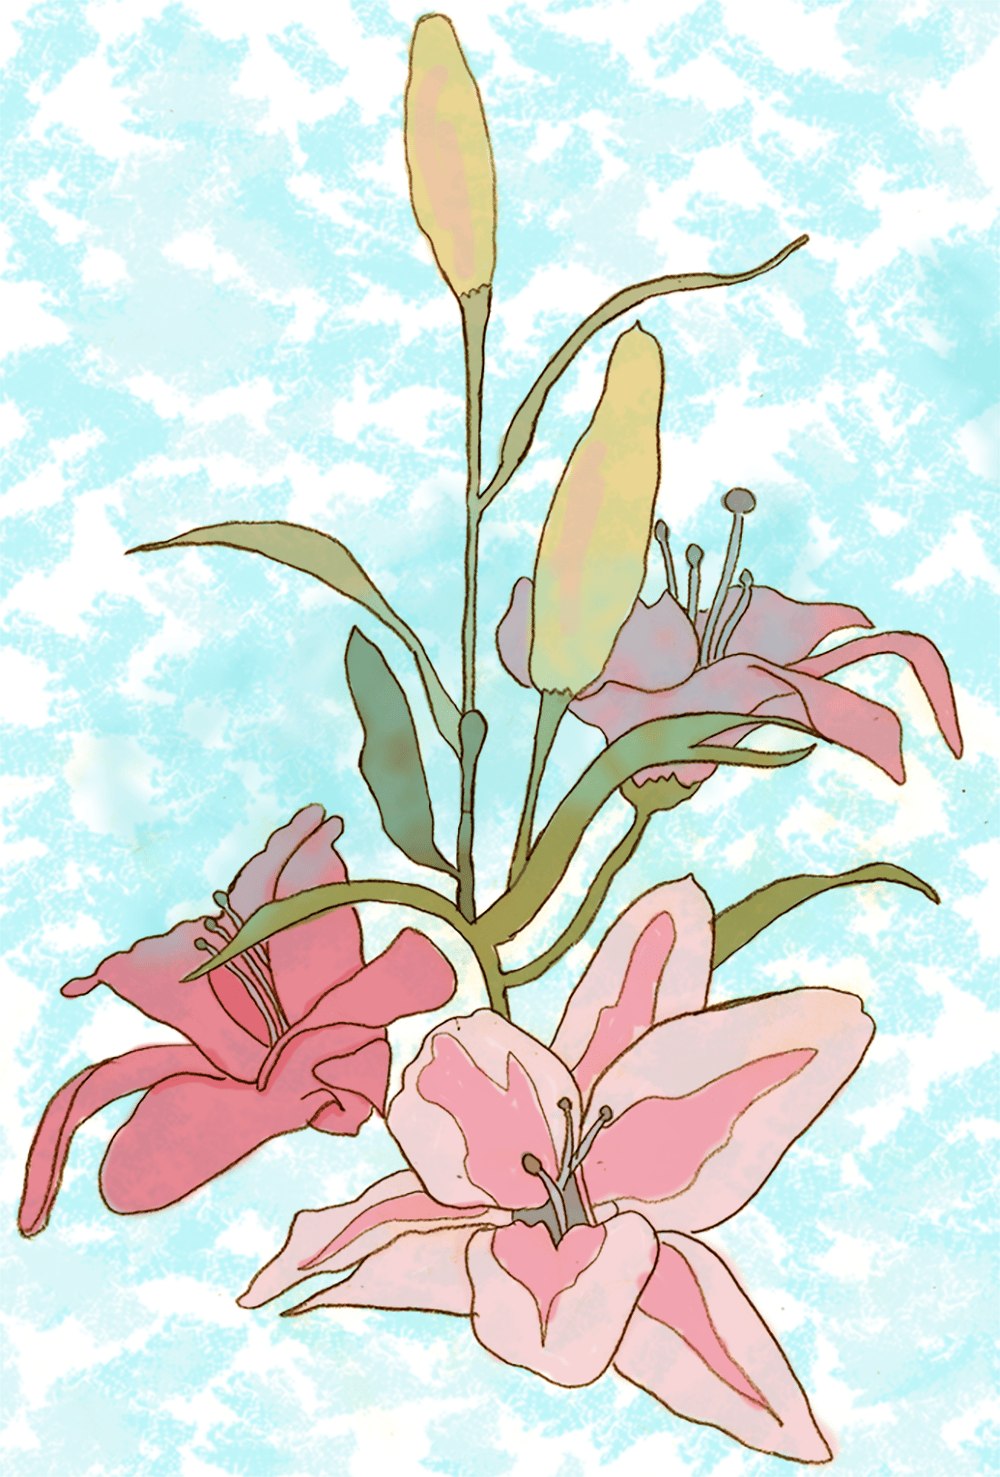 Lilies - image 1 - student project